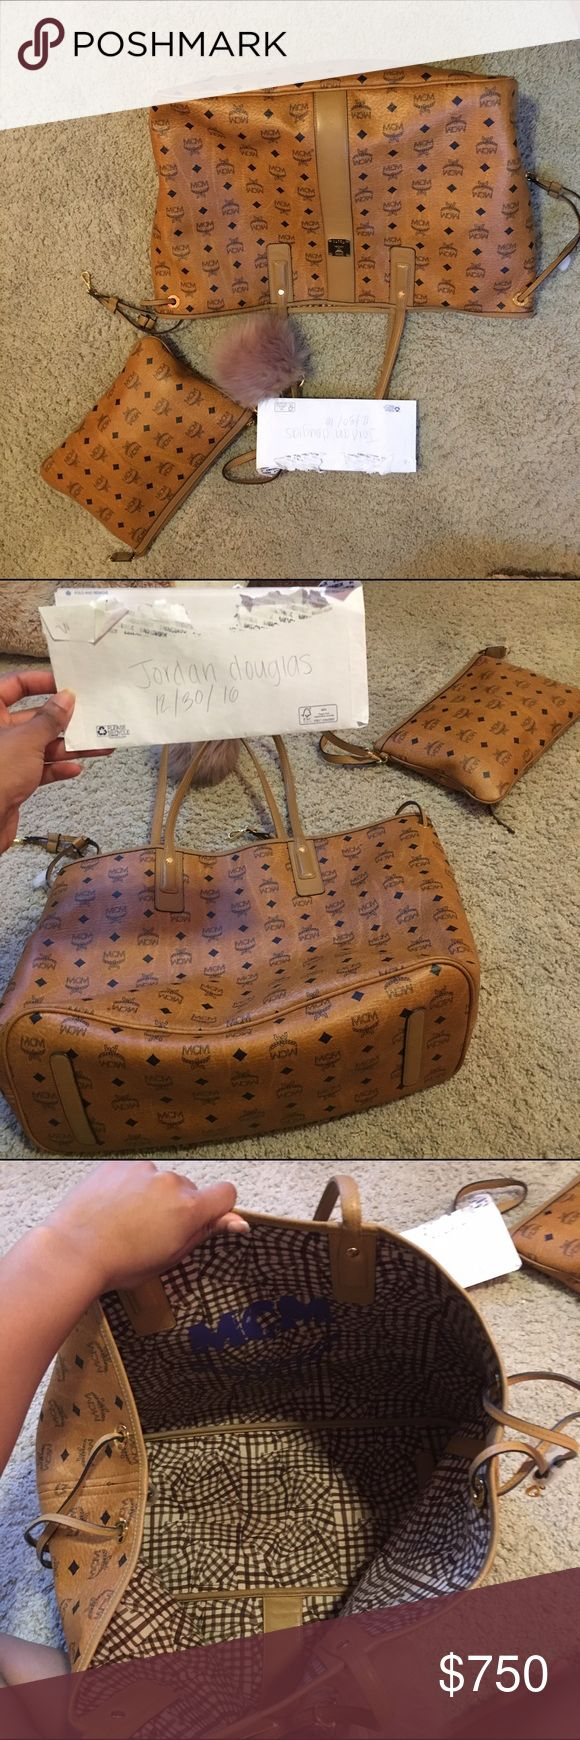 Large Liz MCM Bag and Personal bag Both 100% Authentic and in great condition. Please do not comment your number asking me to text you. I do not take cashier checks or fake Pal payments. PRICE FIRM!!! MCM Bags Totes